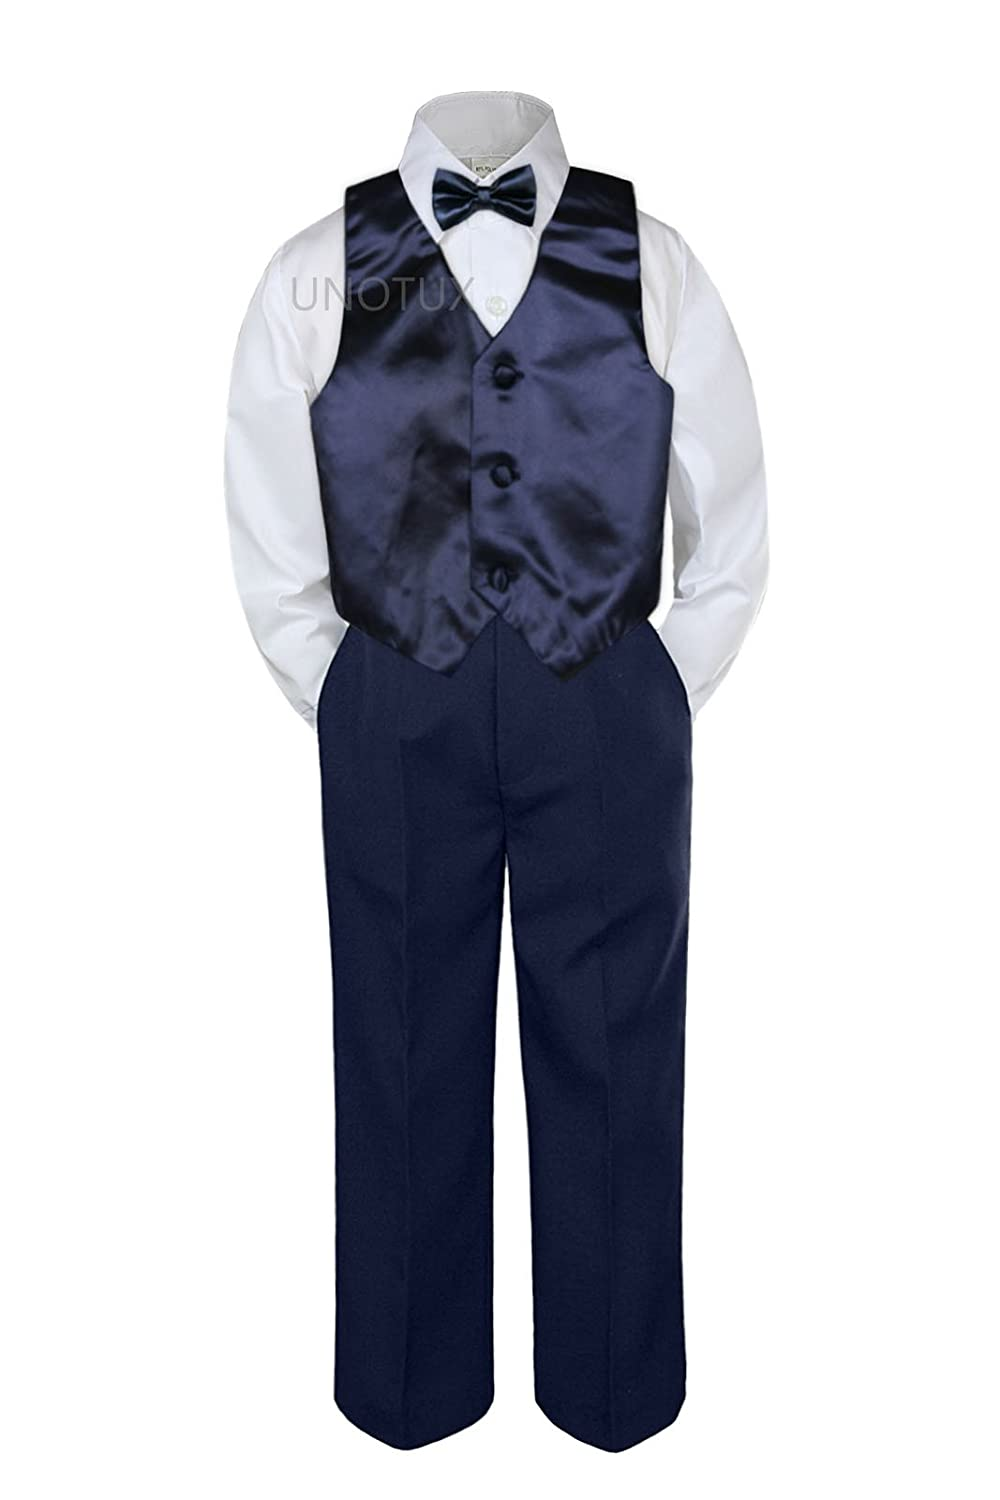 Leadertux 4pc Cash special price Baby Toddler Boys Tie Blue Navy Safety and trust Vest Bow